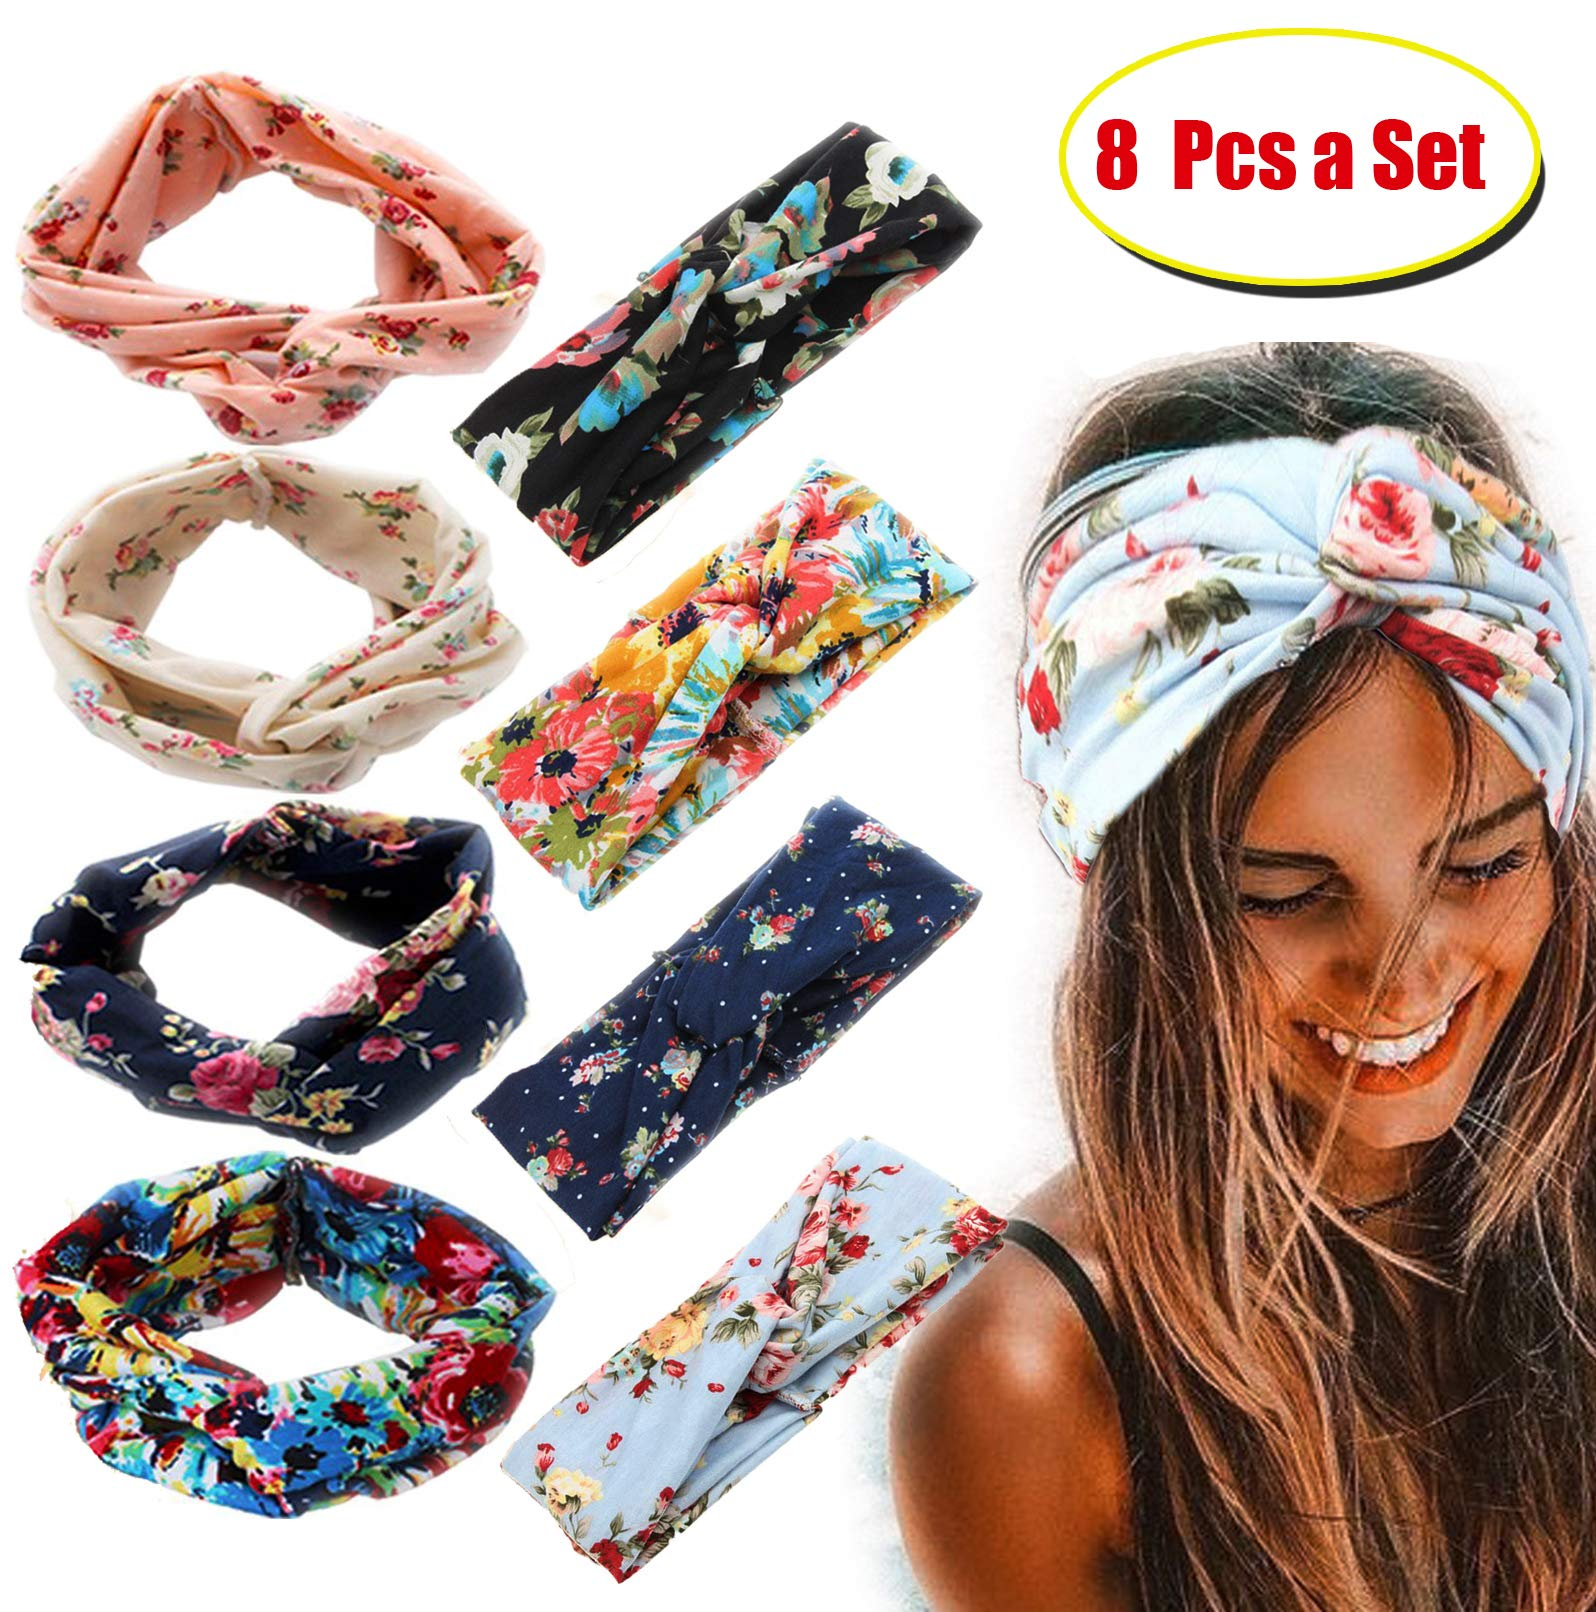 FIBO STEEL 8 Pcs Headbands for Women Girls Wide Boho Flower Knotted Yoga Head Wrap Hair Band